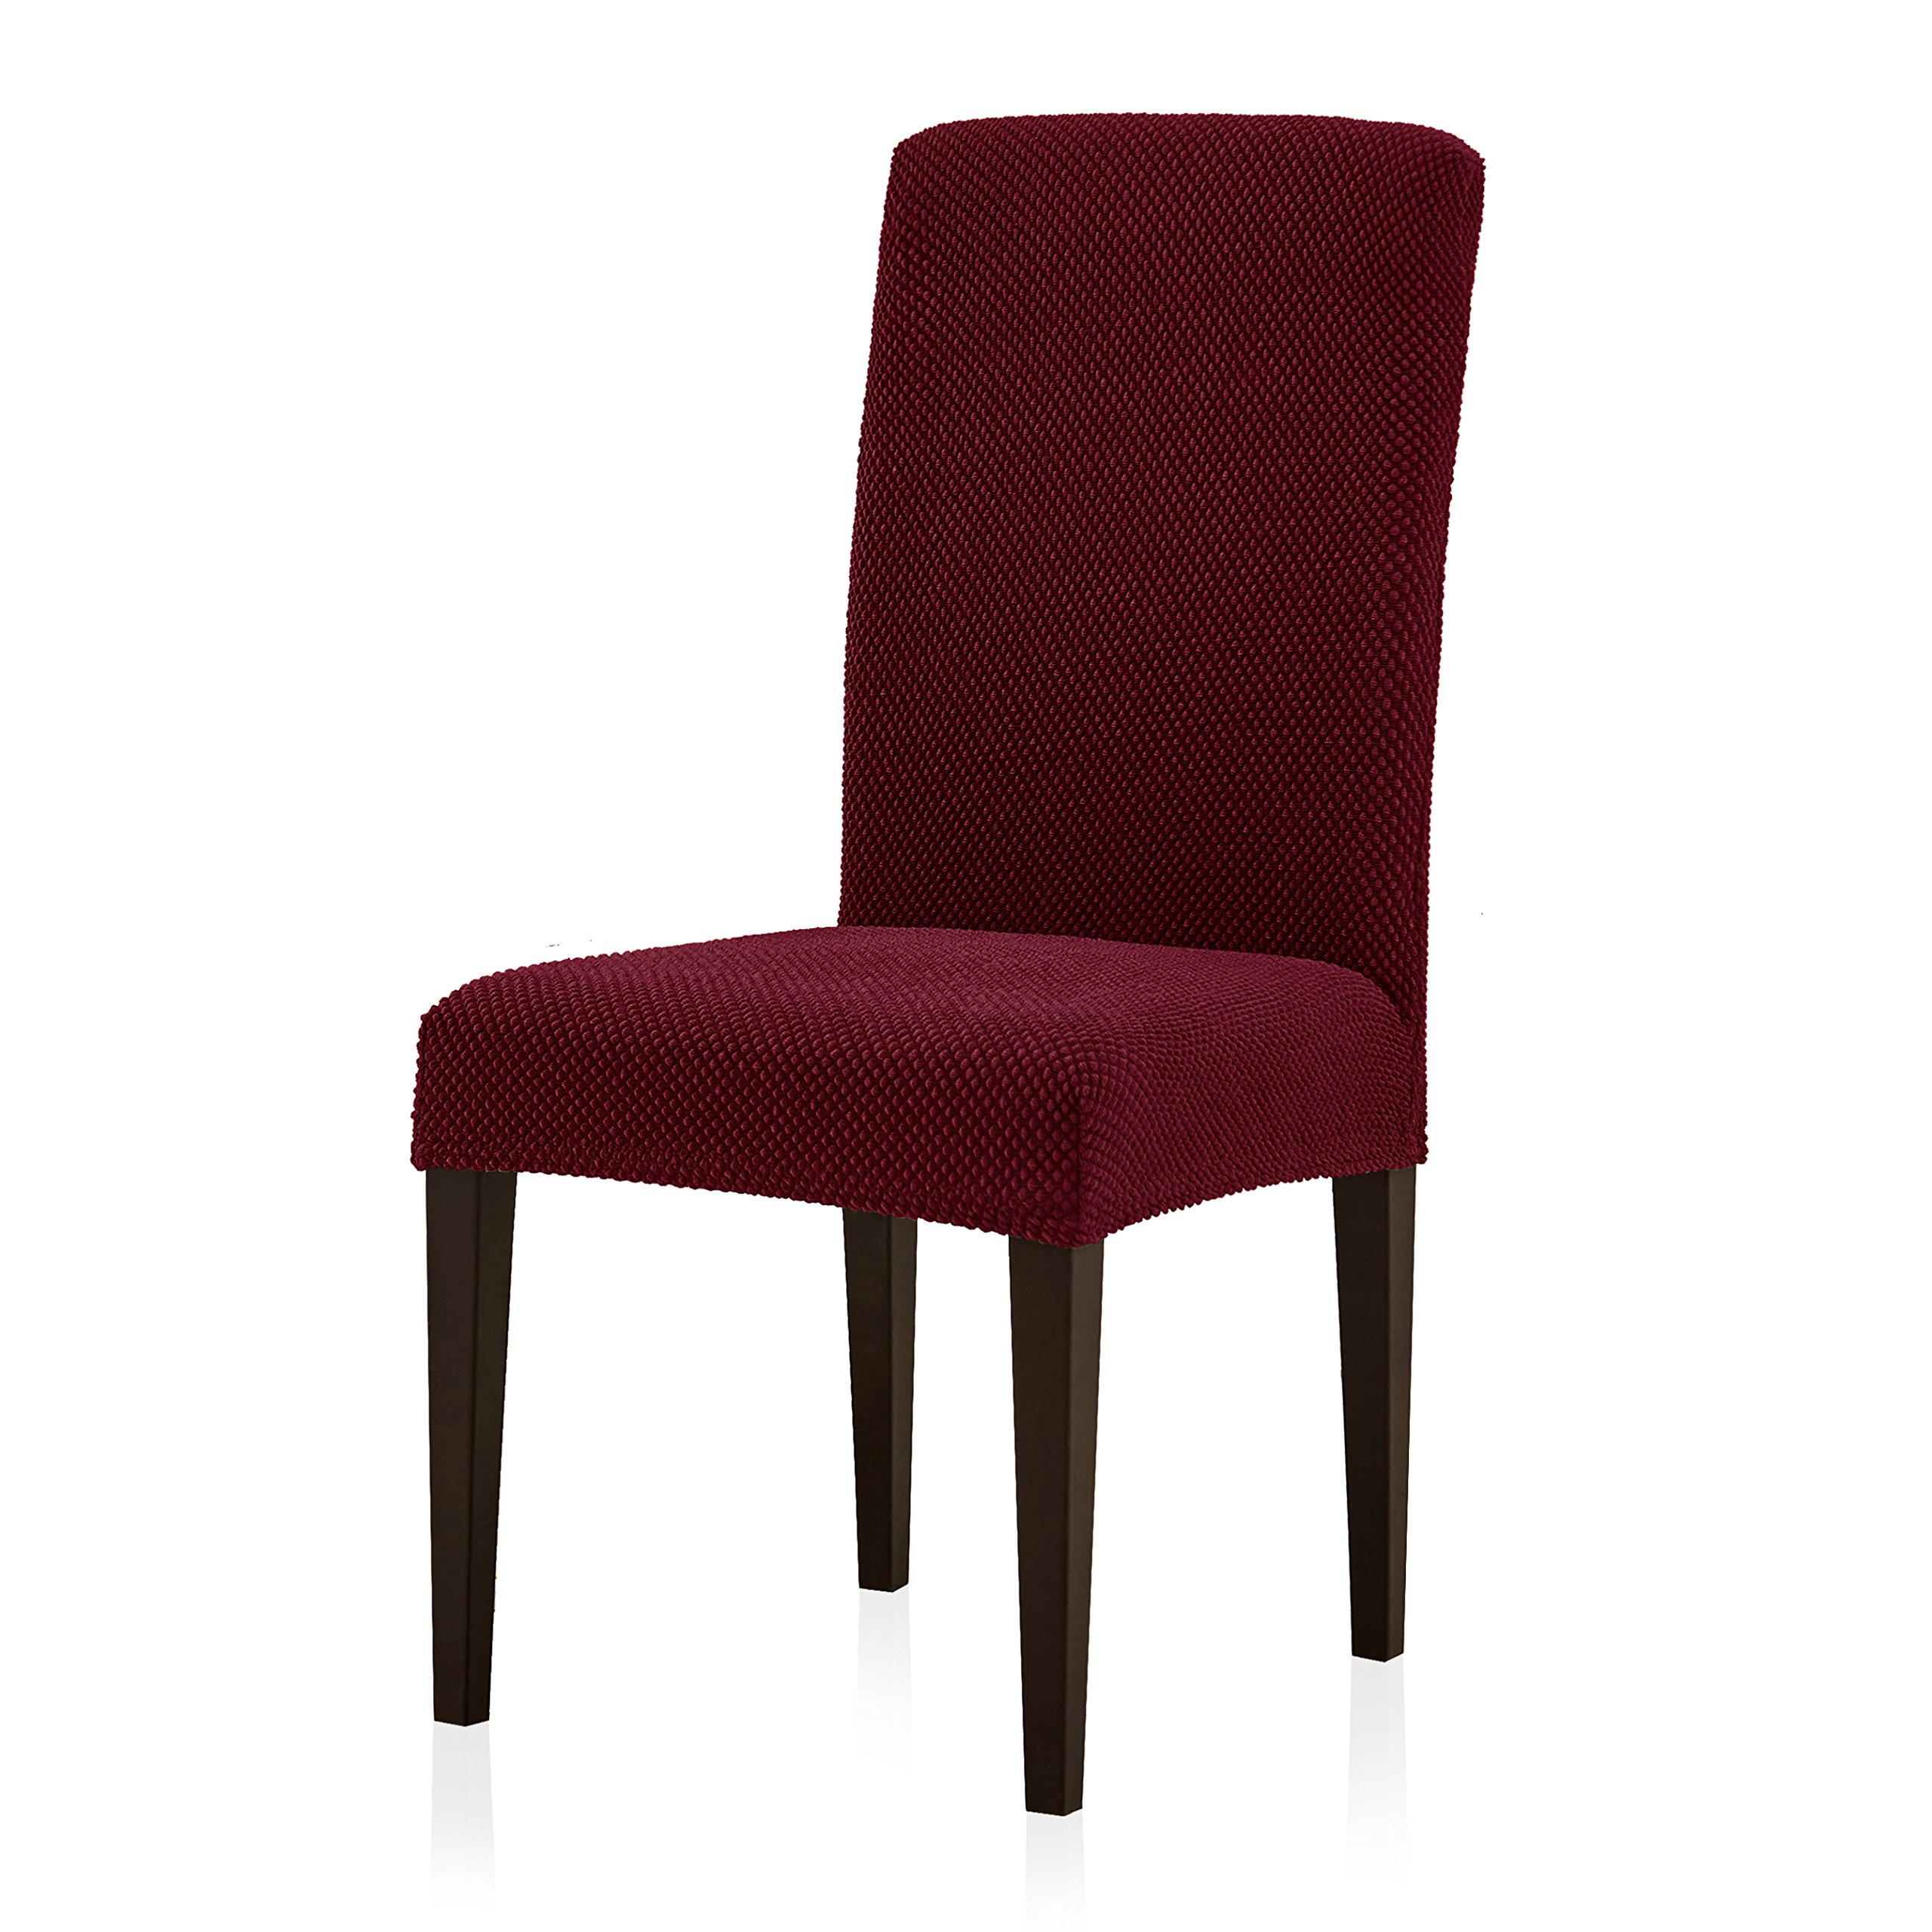 Subrtex Stretch Dining Room Chair Slipcovers (2, Wine Jacquard)